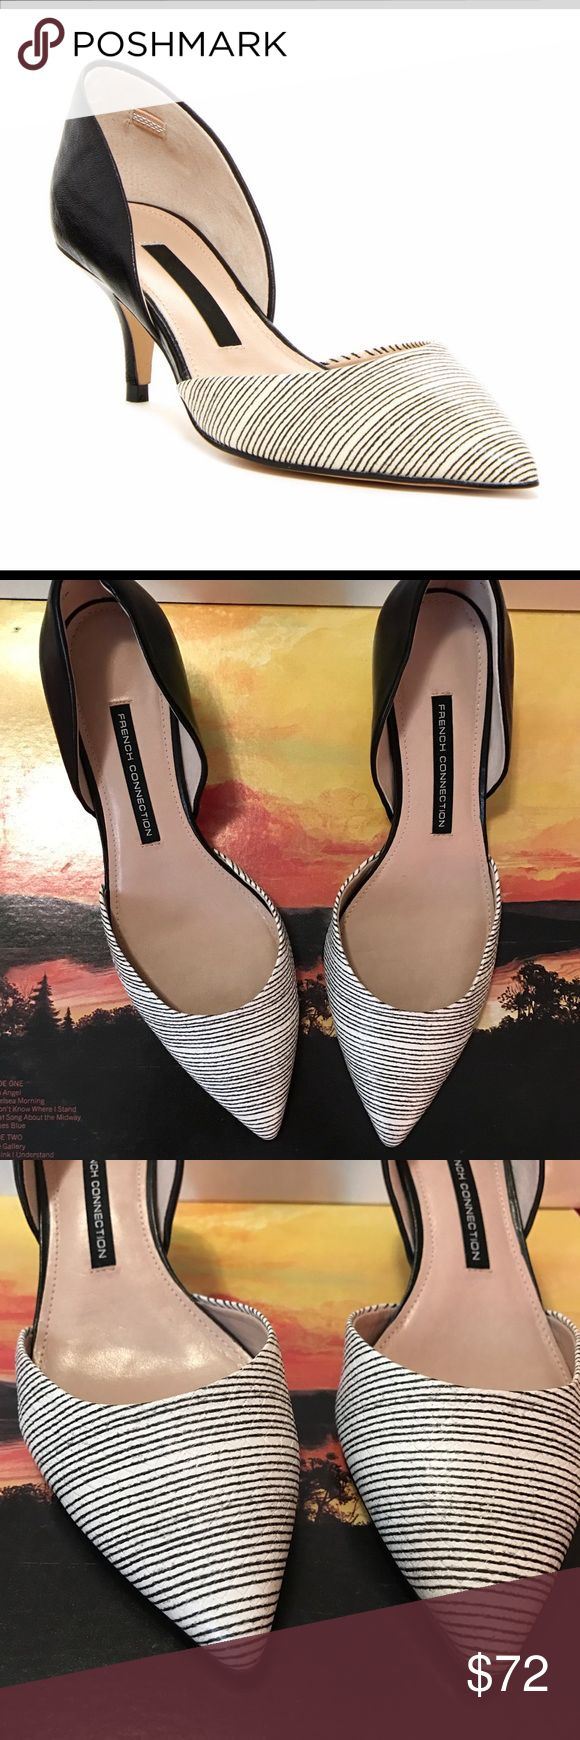 """FRENCH CONNECTION Effie Kitten Heel Pump 8 MINT FRENCH CONNECTION Effie Kitten Heel Pump Size 8 US. Gorgeous Black and White Detailing. Pointed Toe. Nearly New Condition. Heel Approximately 2"""". All Reasonable Offers Are Welcome. $120 French Connection Shoes Heels"""